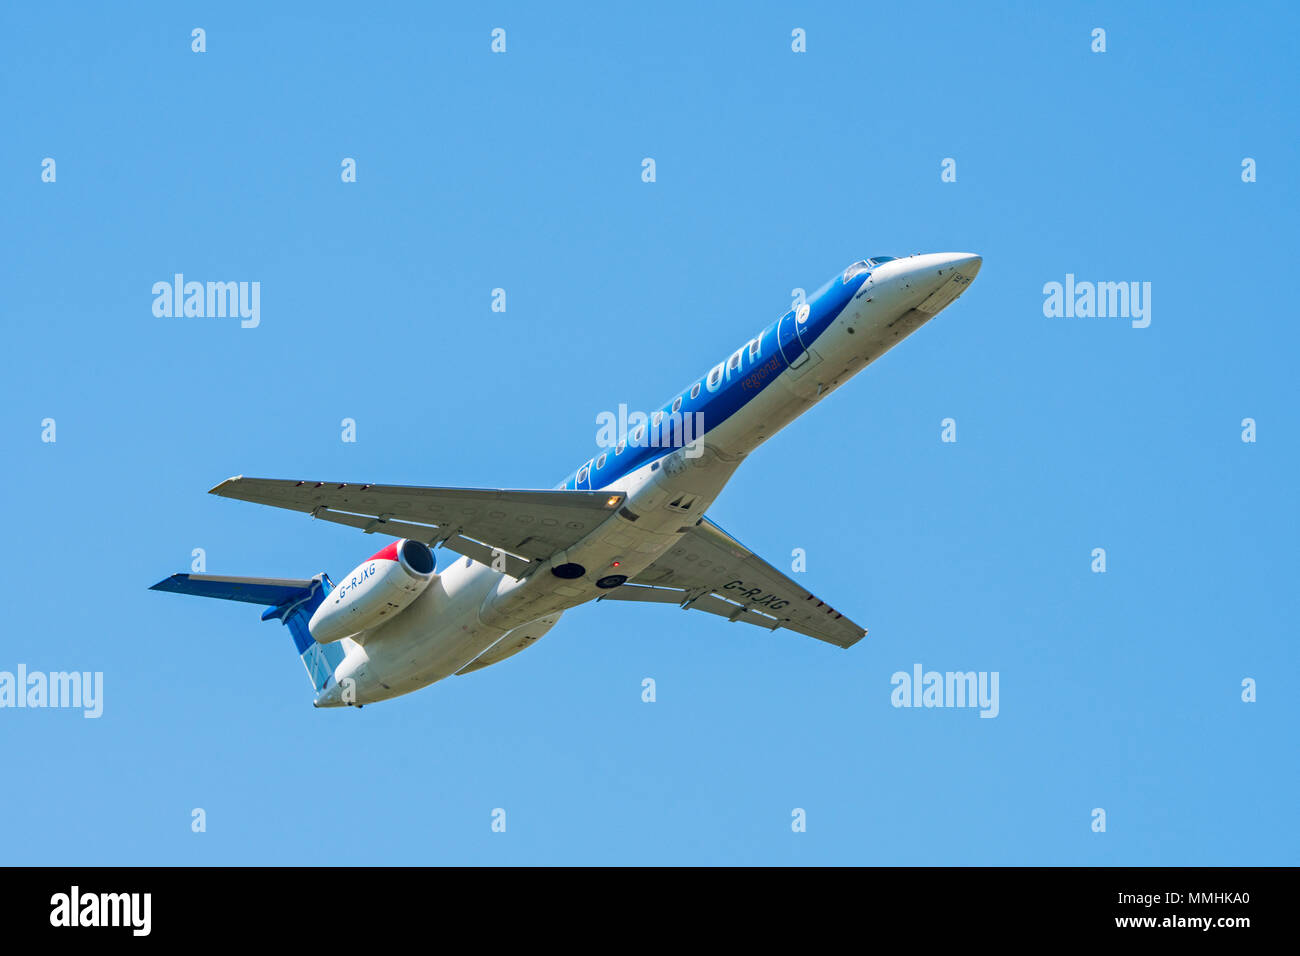 Embraer ERJ-145-EP, twin-engine regional jet from British Midland Regional Limited / Flybmi, British regional airline in flight against blue sky - Stock Image